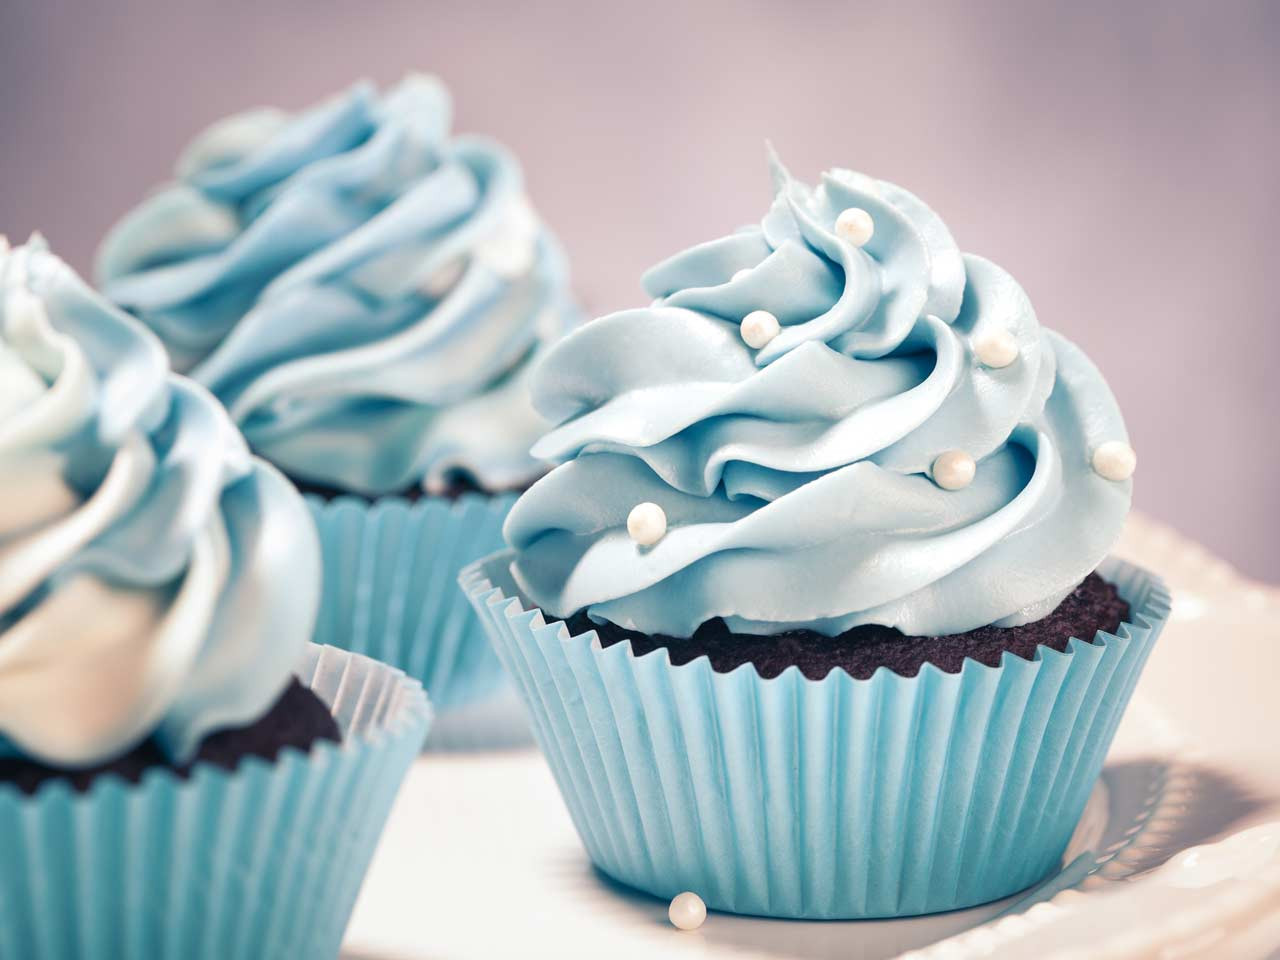 How To Make Icings For Cupcakes  buttercream icing